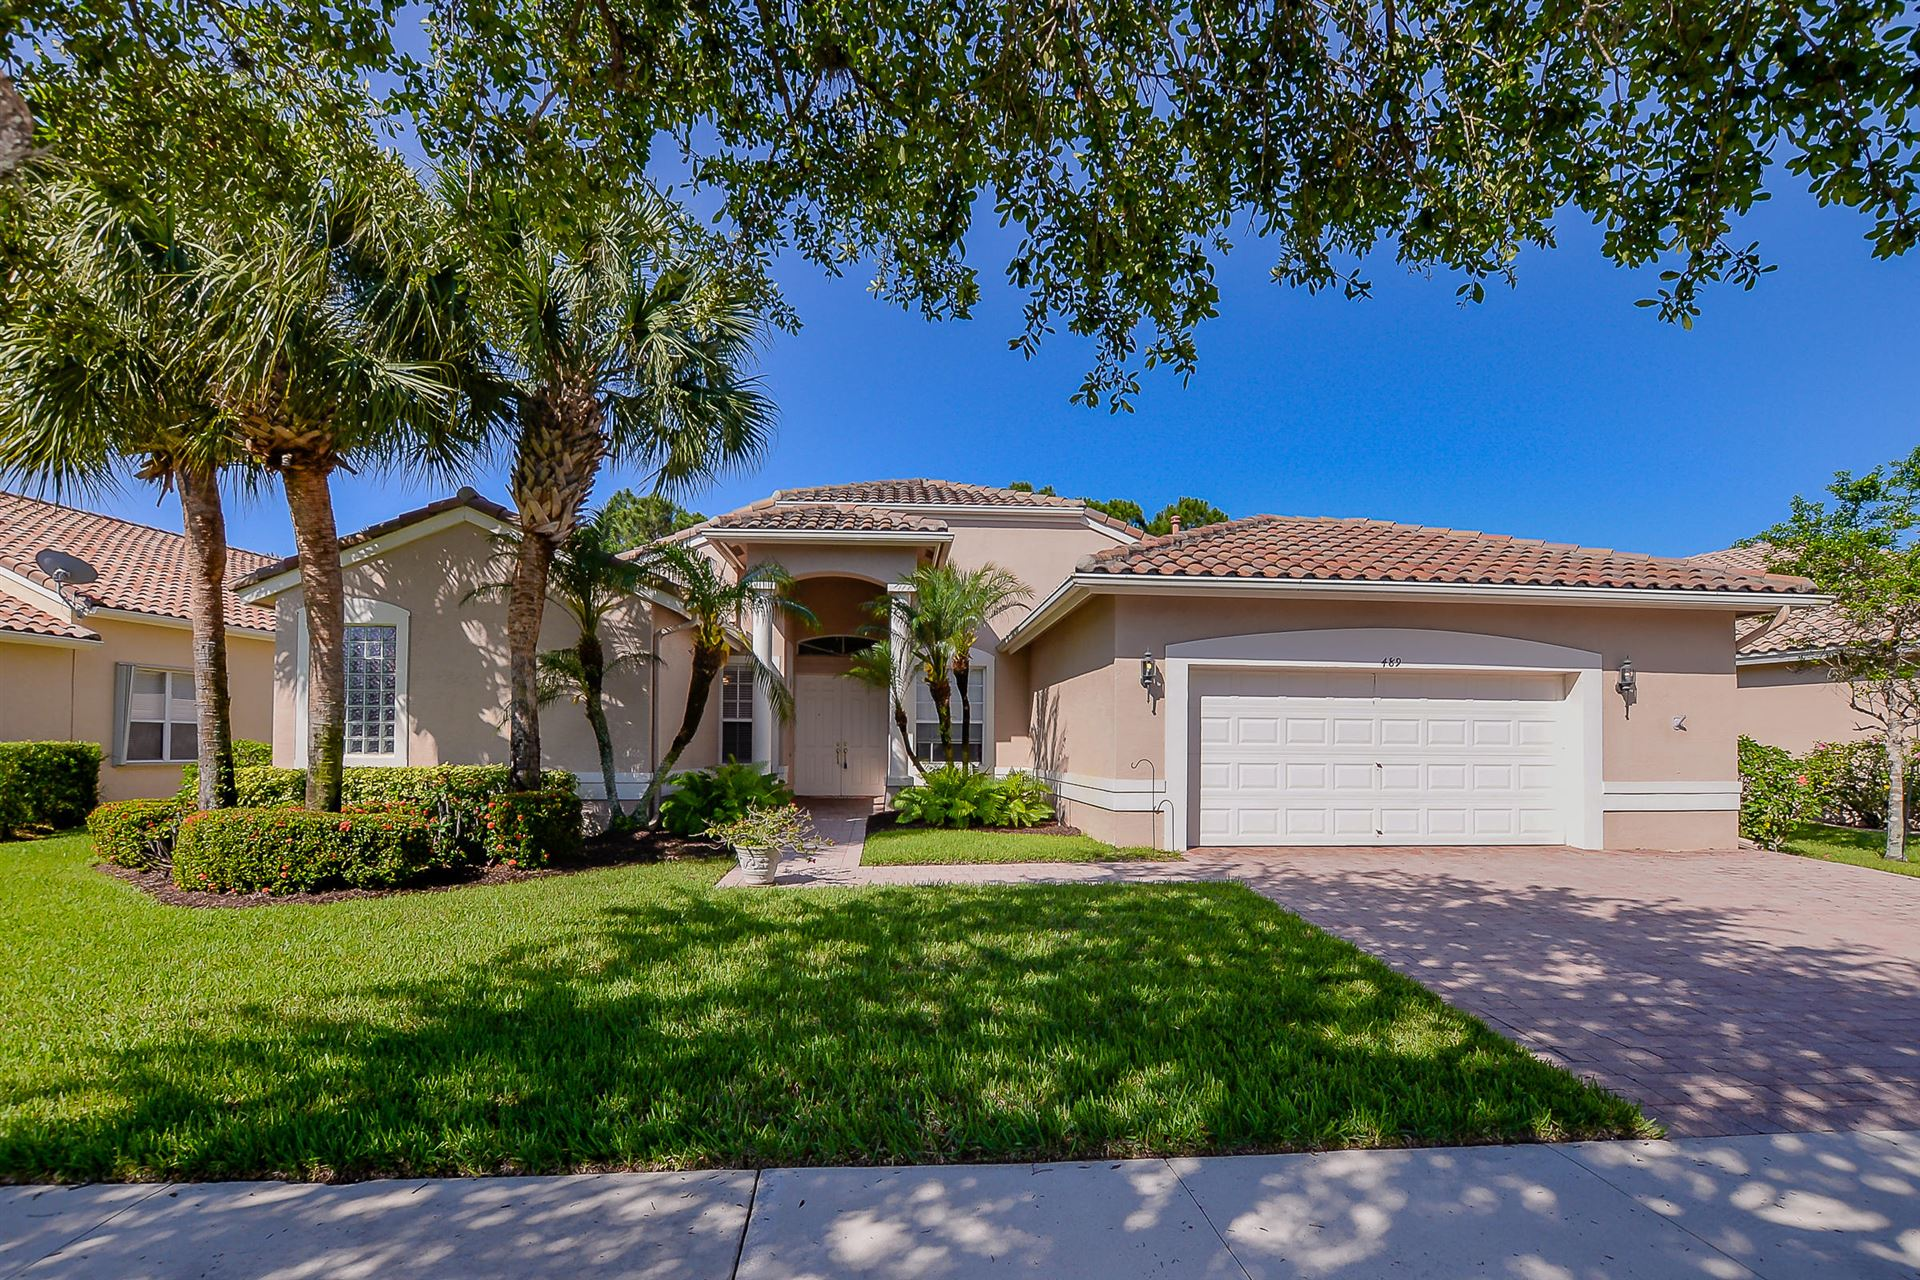 489 NW Blue Lake Drive, Port Saint Lucie, FL 34986 - #: RX-10618896